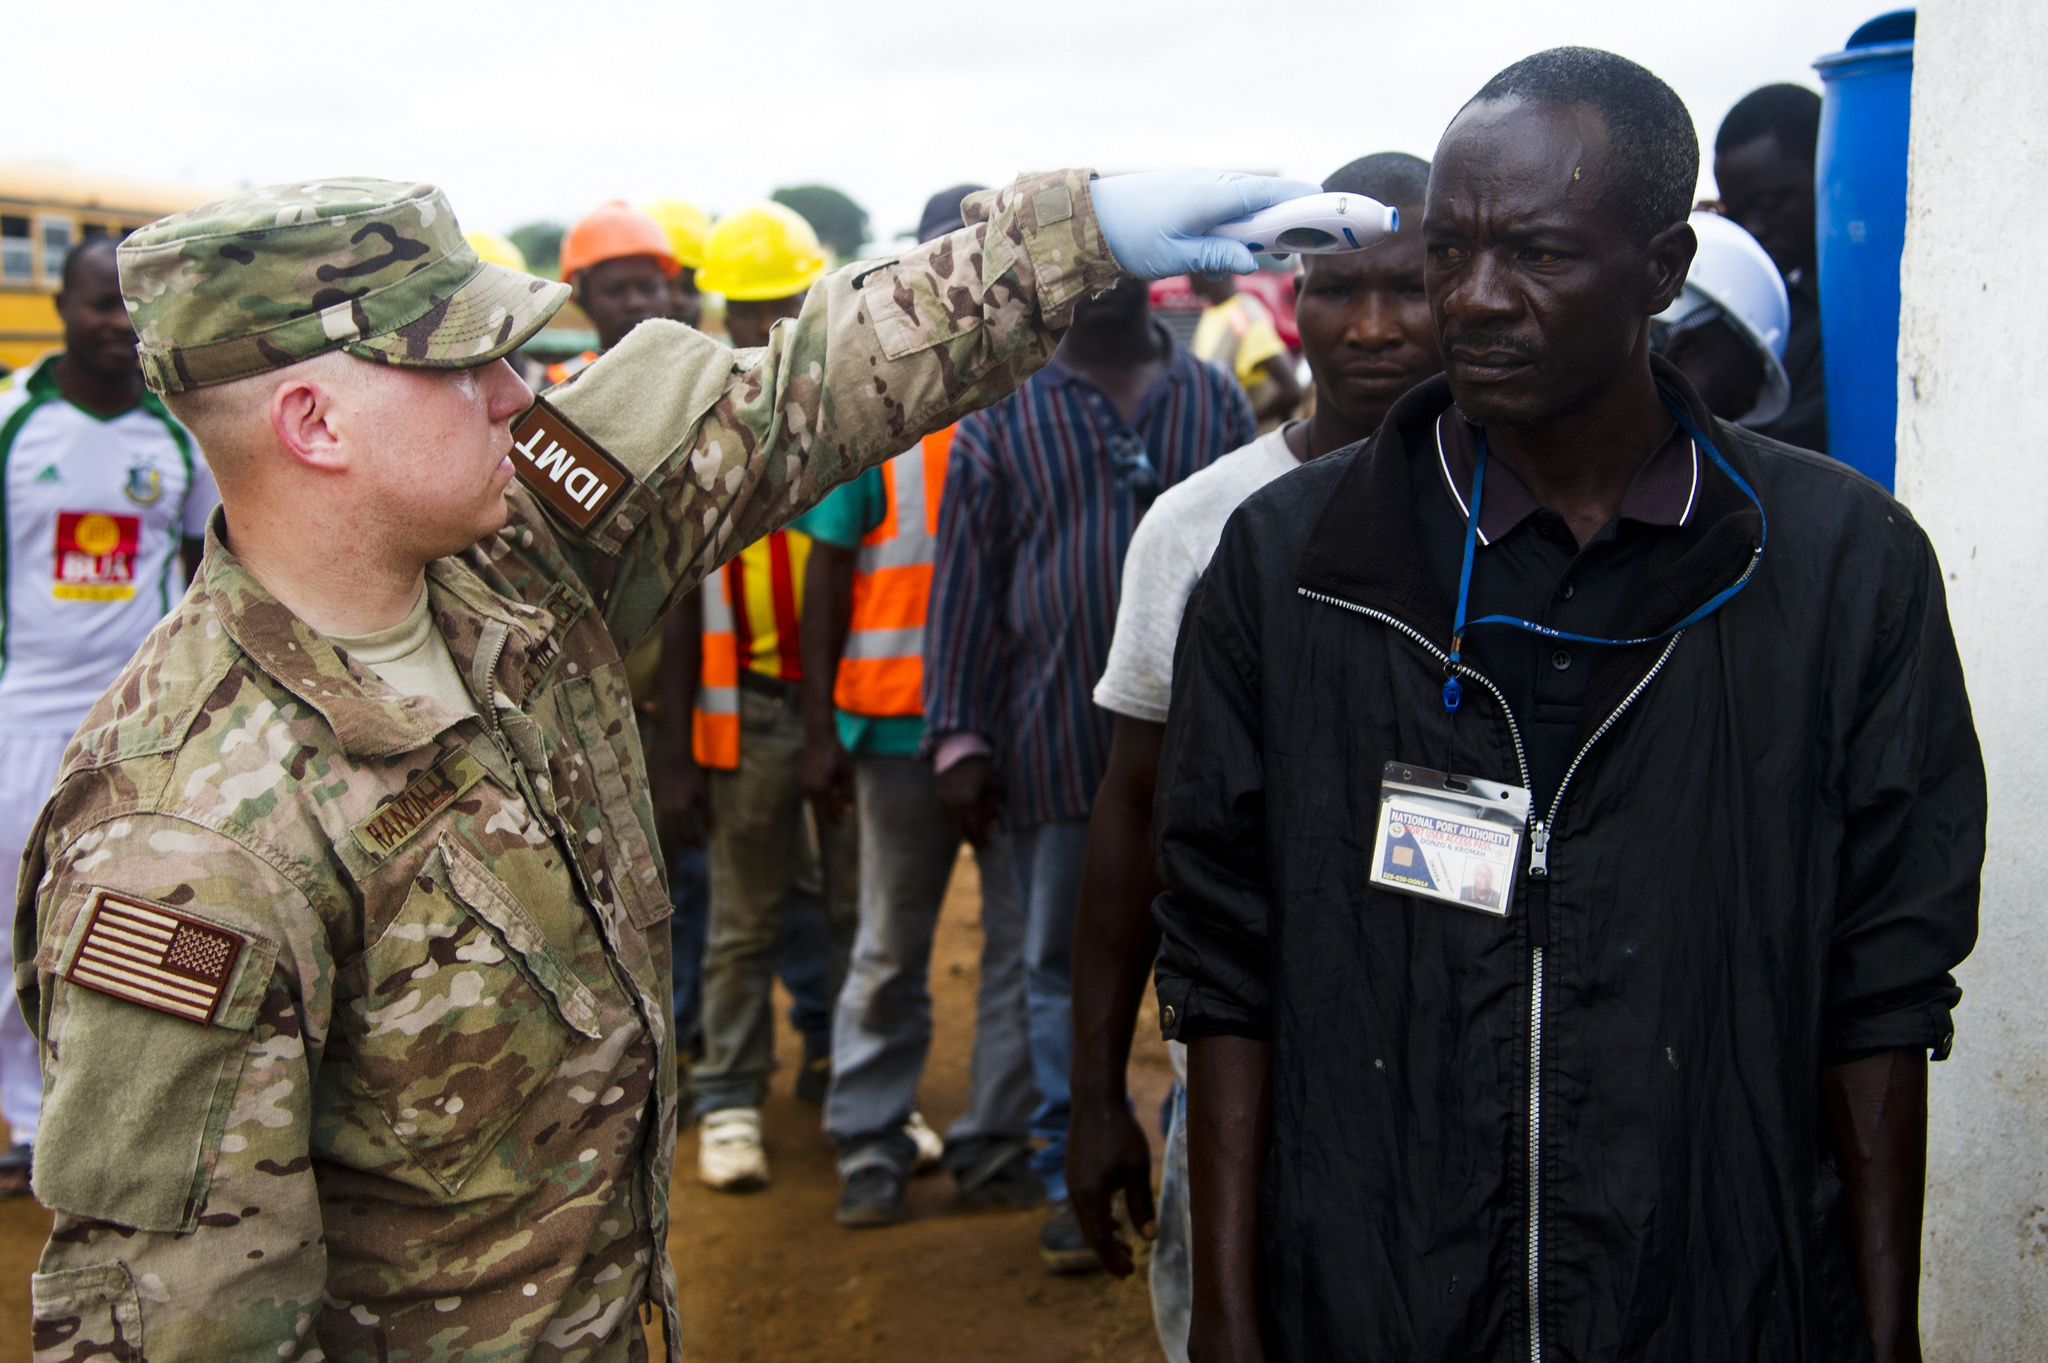 U.S. Air Force Airman supporting Operation United Assistance